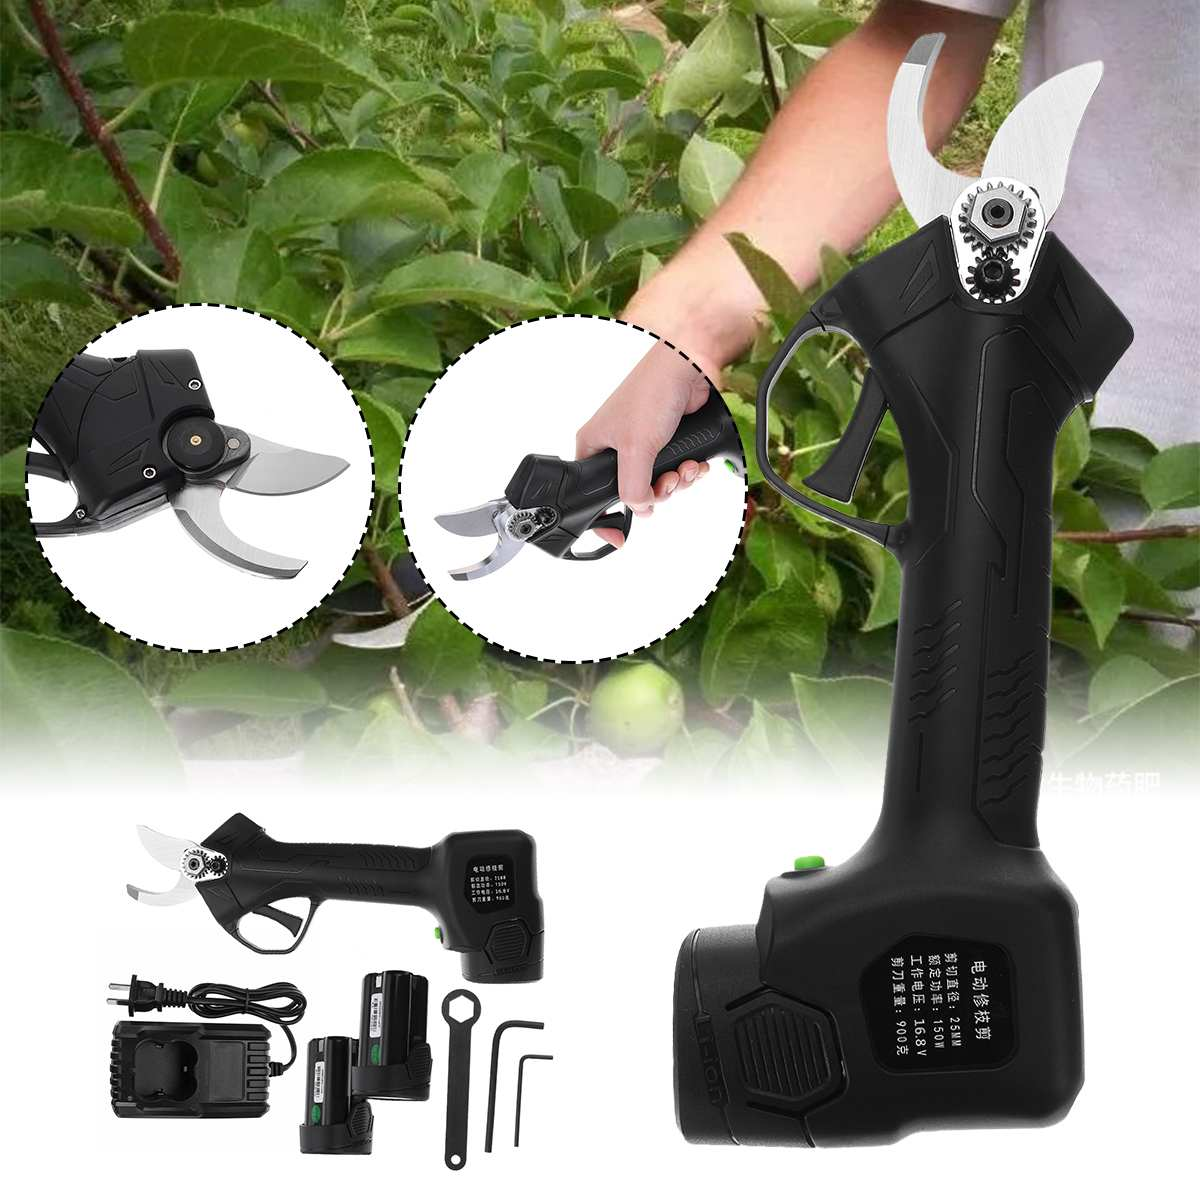 Rechargeable Electric Garden Scissors for Pruning Stems and Branches with Durable Battery and 2.5 CM Maximum Cutting 1